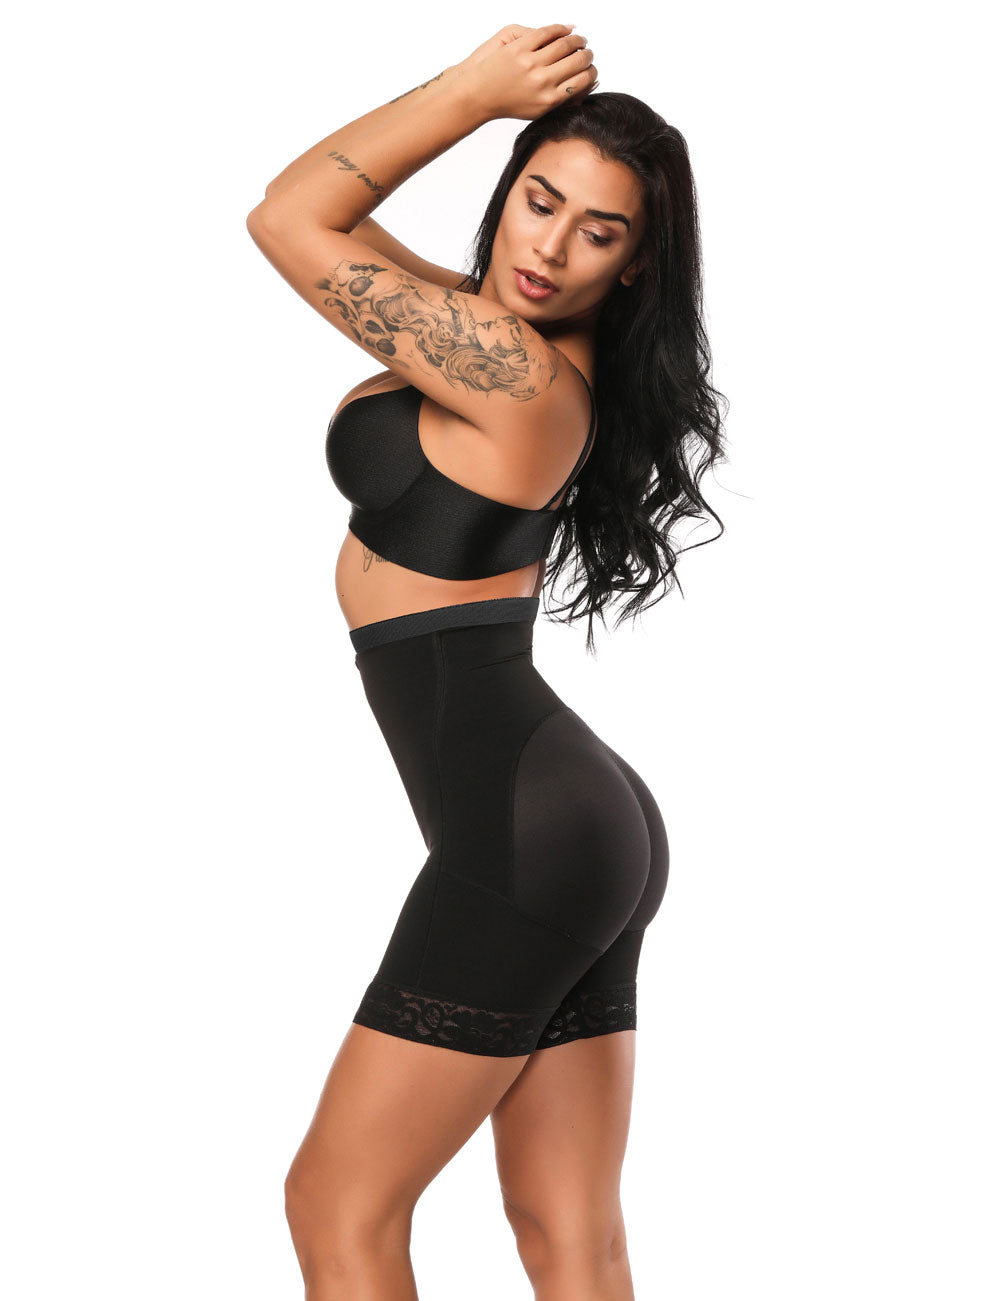 63f1123e30 ... Compression Silhouette Anti-Curl Material Shapewear Butt Enhancer Chic  Online ...